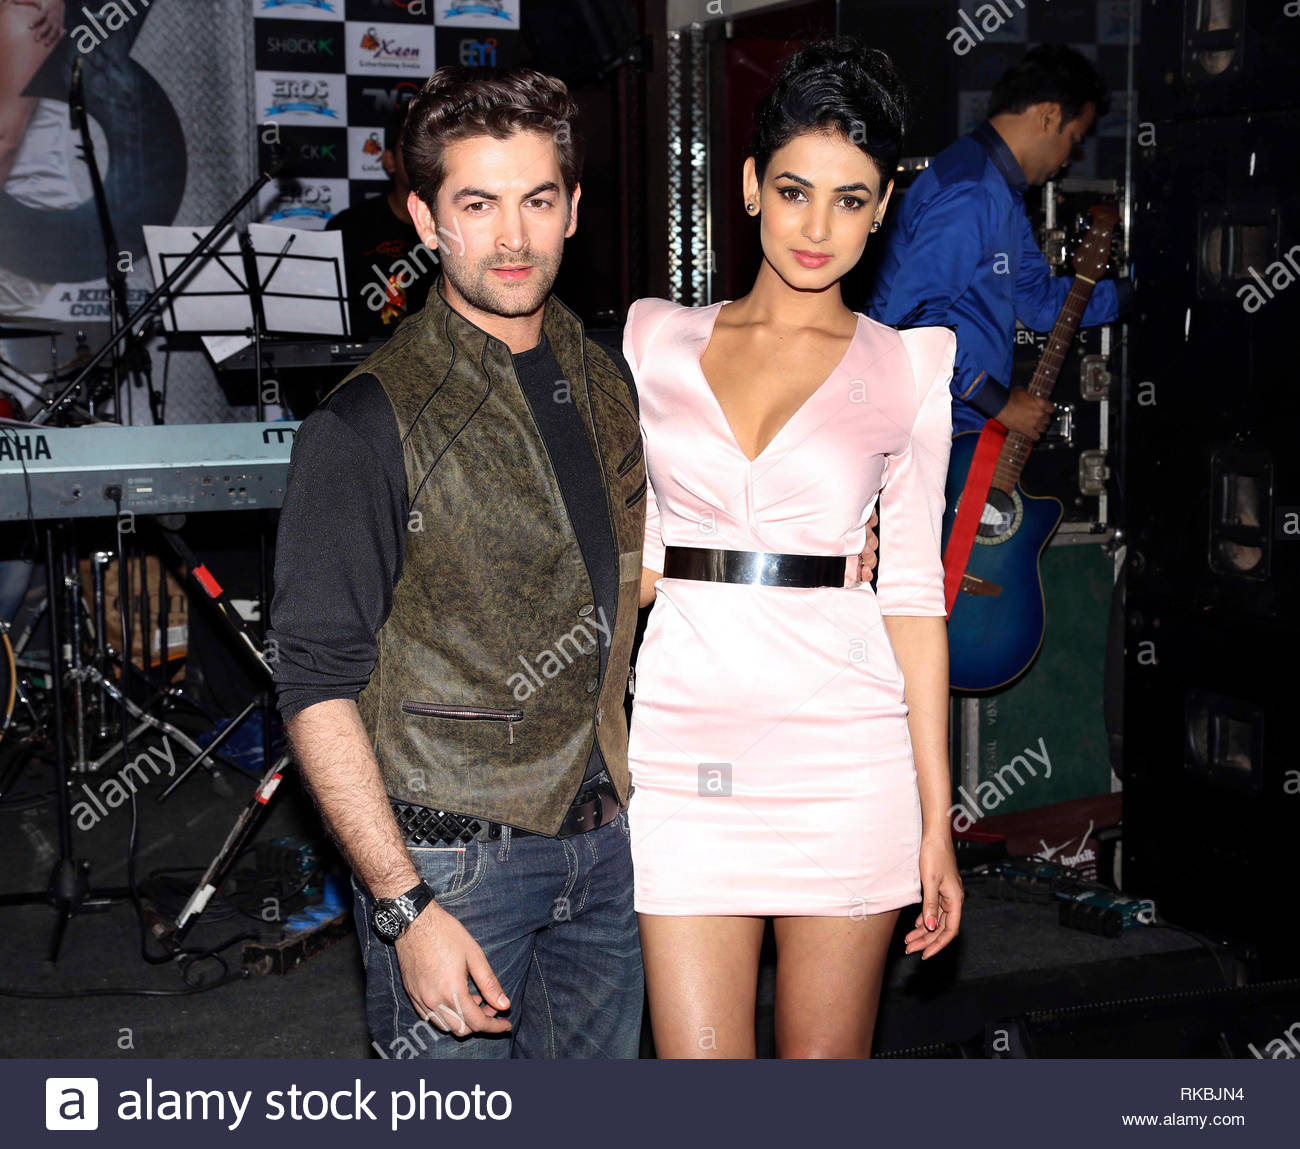 Bollywood actors Neil Nitin Mukesh and Sonal Chauhan pose during the music launch of their upcoming film 3G in Mumbai, India on February 26, 2013. The Bollywood thriller film written and directed by Shantanu Ray Chhibber and Sheershak Anand will hit the theaters on March 15, 2013. (Aakash Berde) - Stock Image